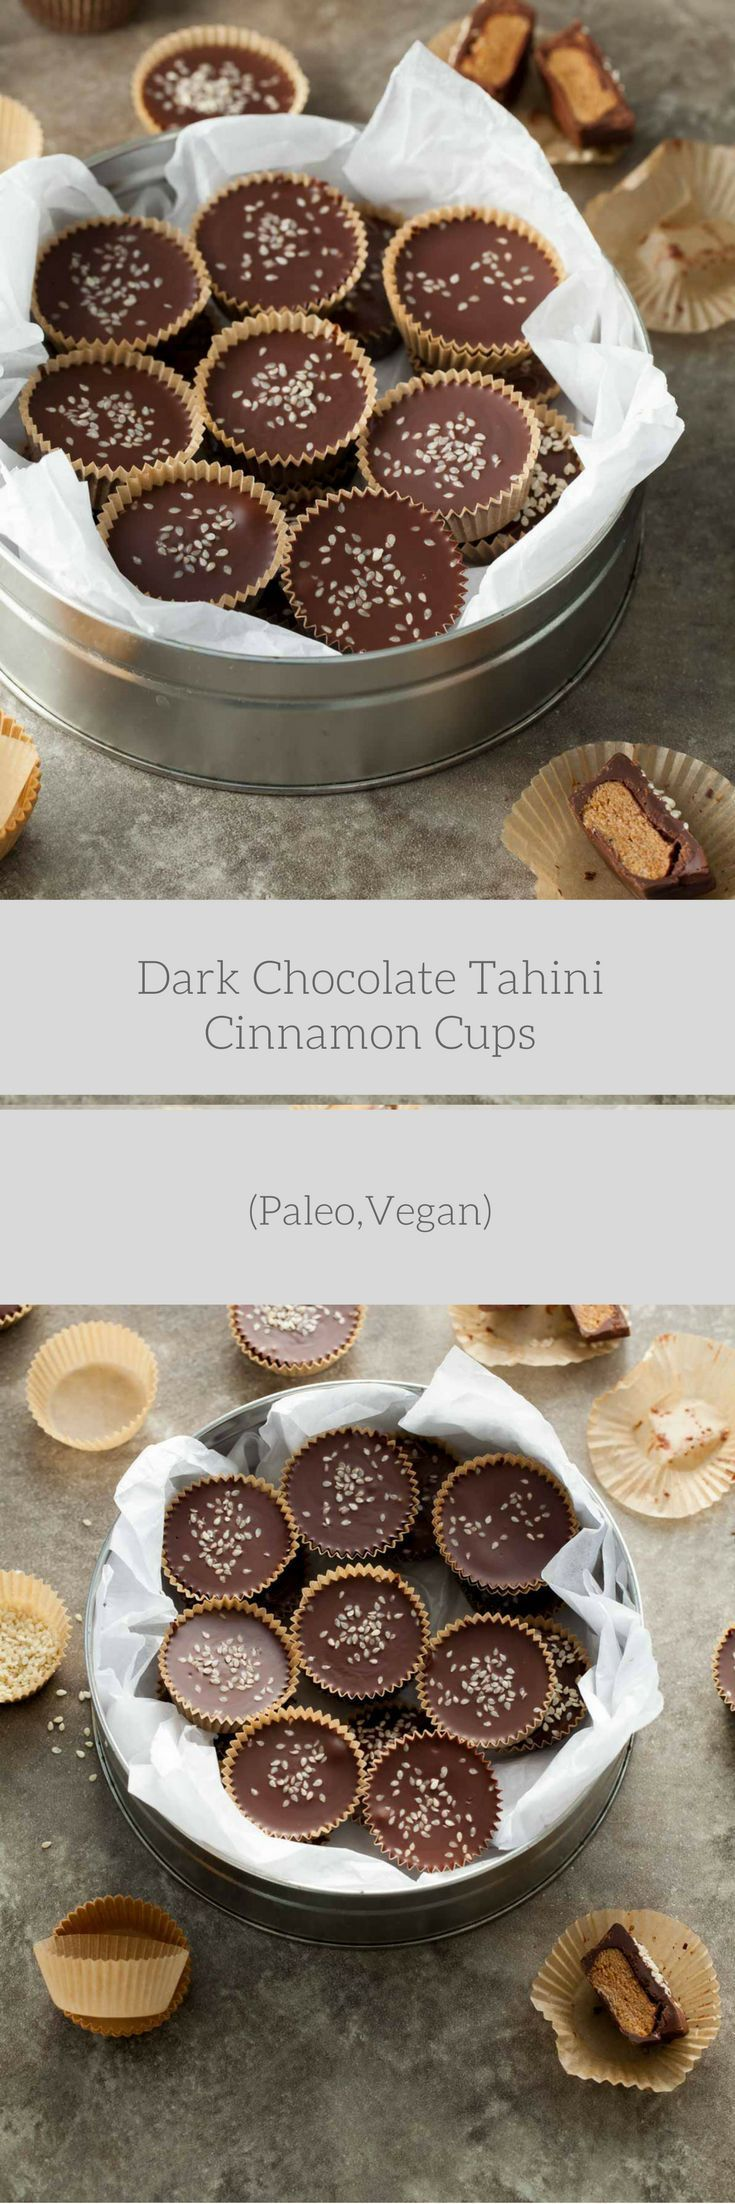 If you're looking for something deliciously different to add to your dessert game this year, these dark chocolate tahini cups are it. Let's make candy today. More specifically, let's make dark cho…